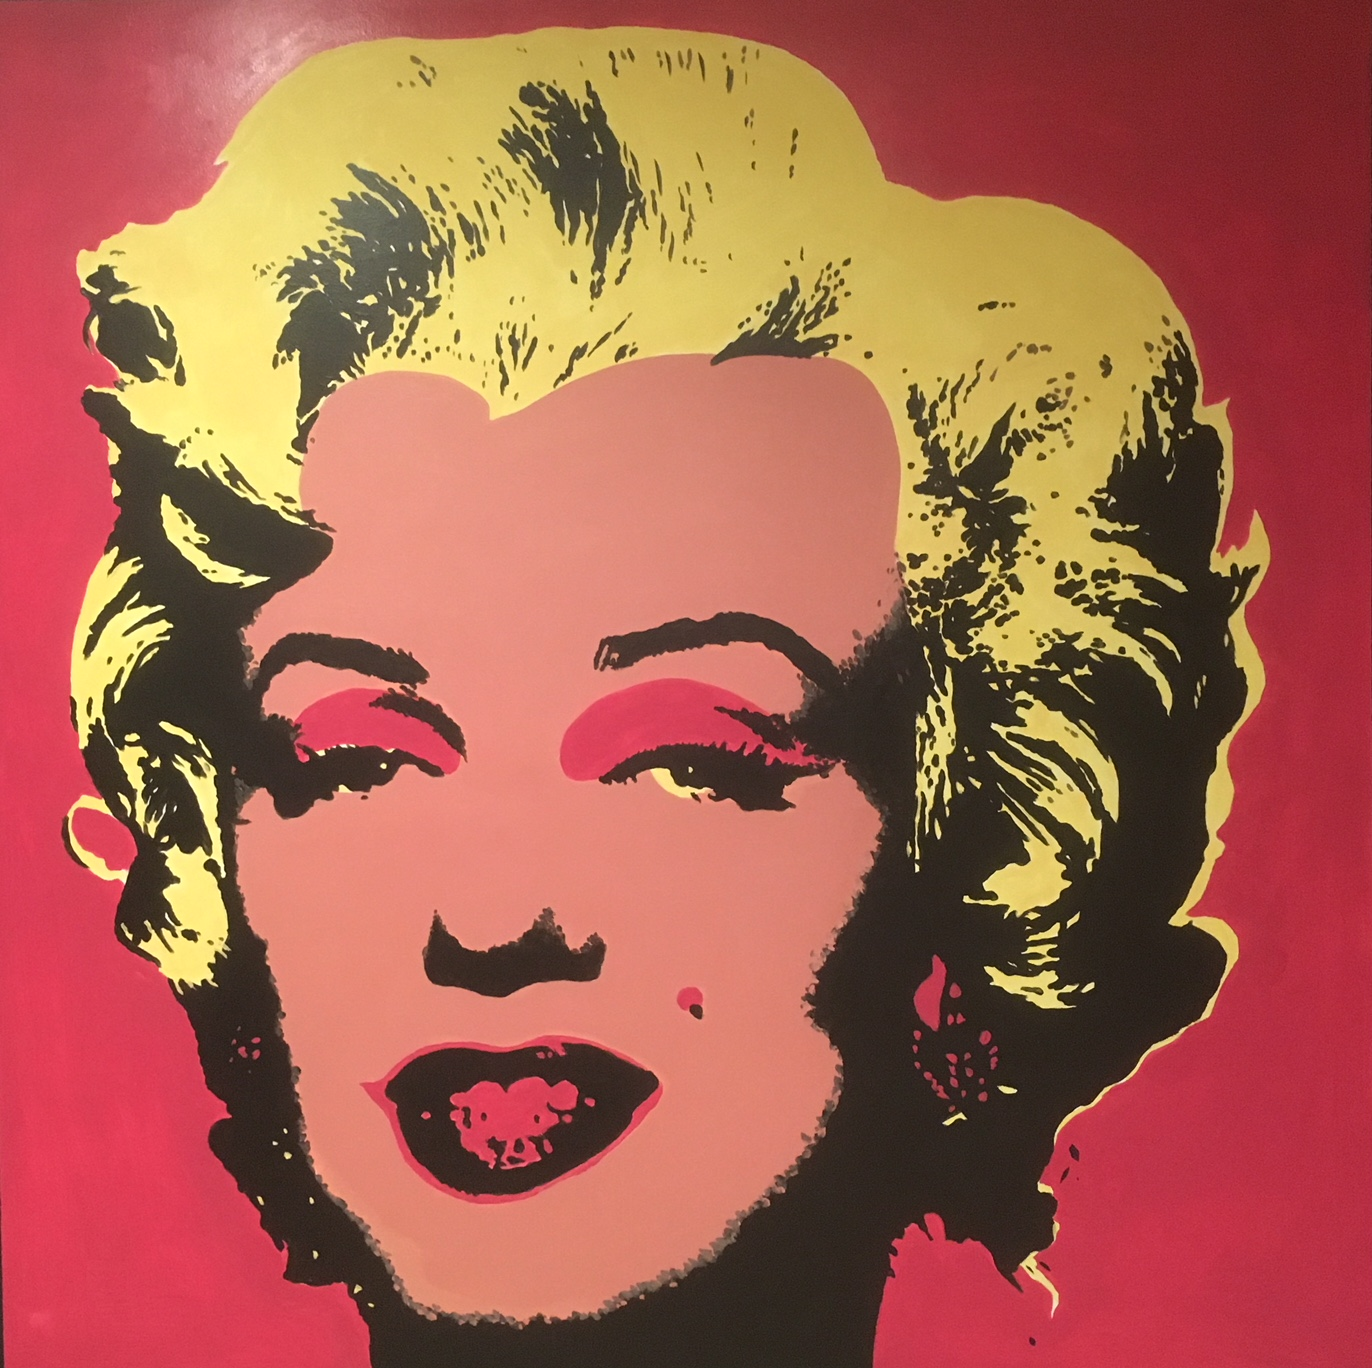 andy warhol images - HD 1372×1368